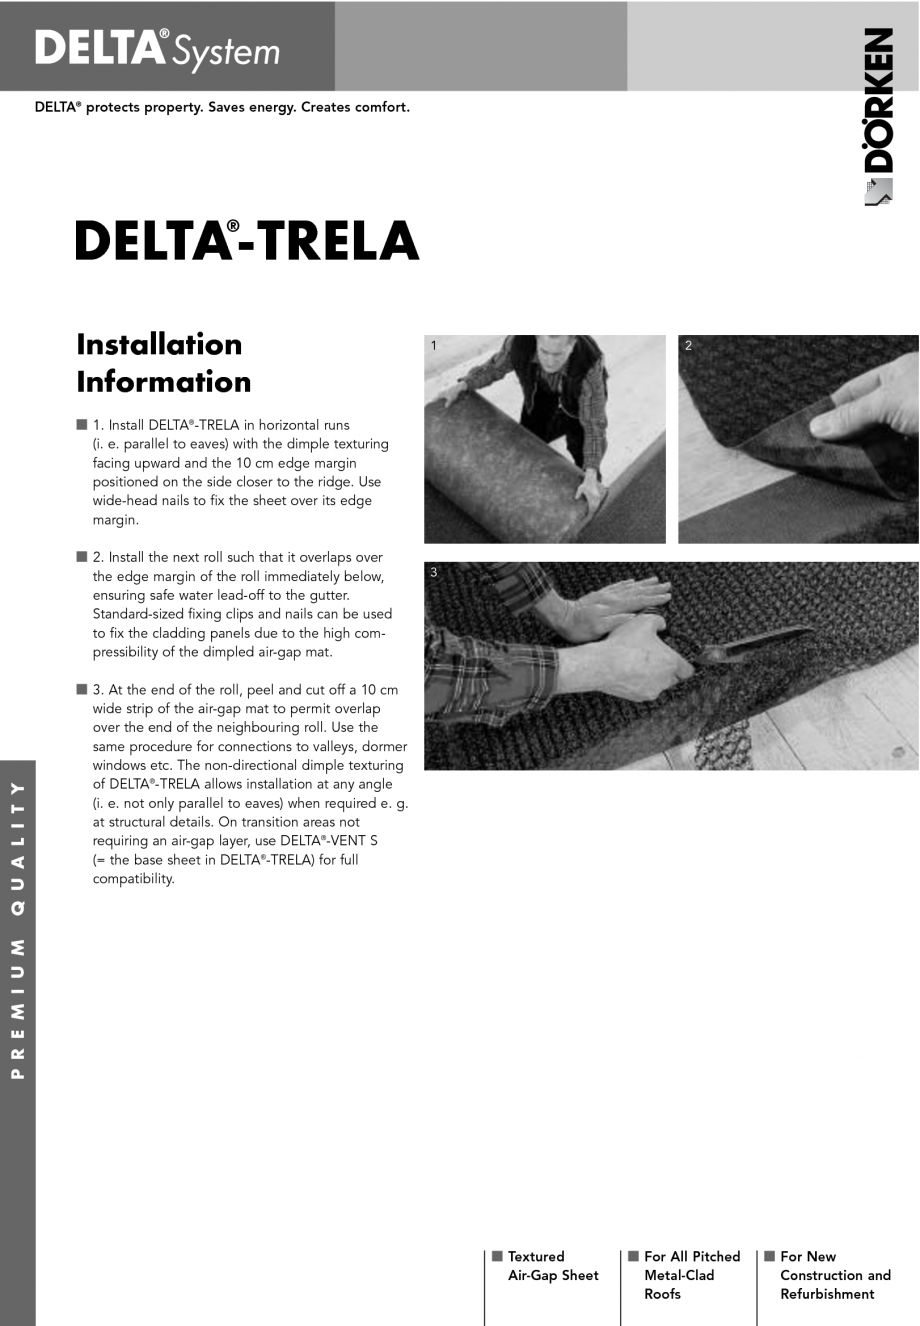 Instructiuni montaj, utilizare Patura de separare pentru structuri metalice inclinate